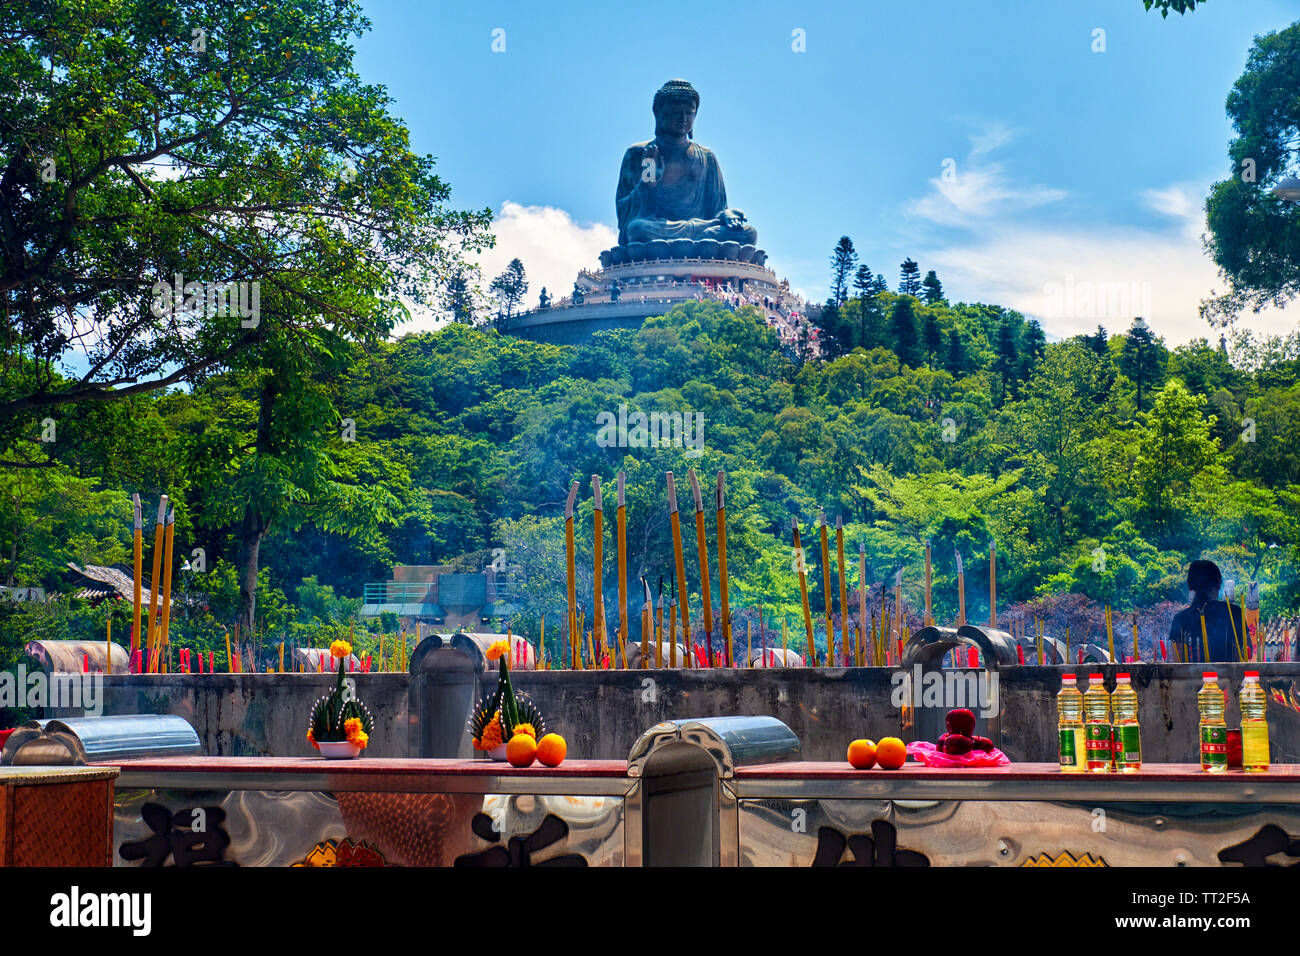 Low Angle View of the Tian Tan Buddha Statue with Offerings, Lantau, Hong Kong Stock Photo